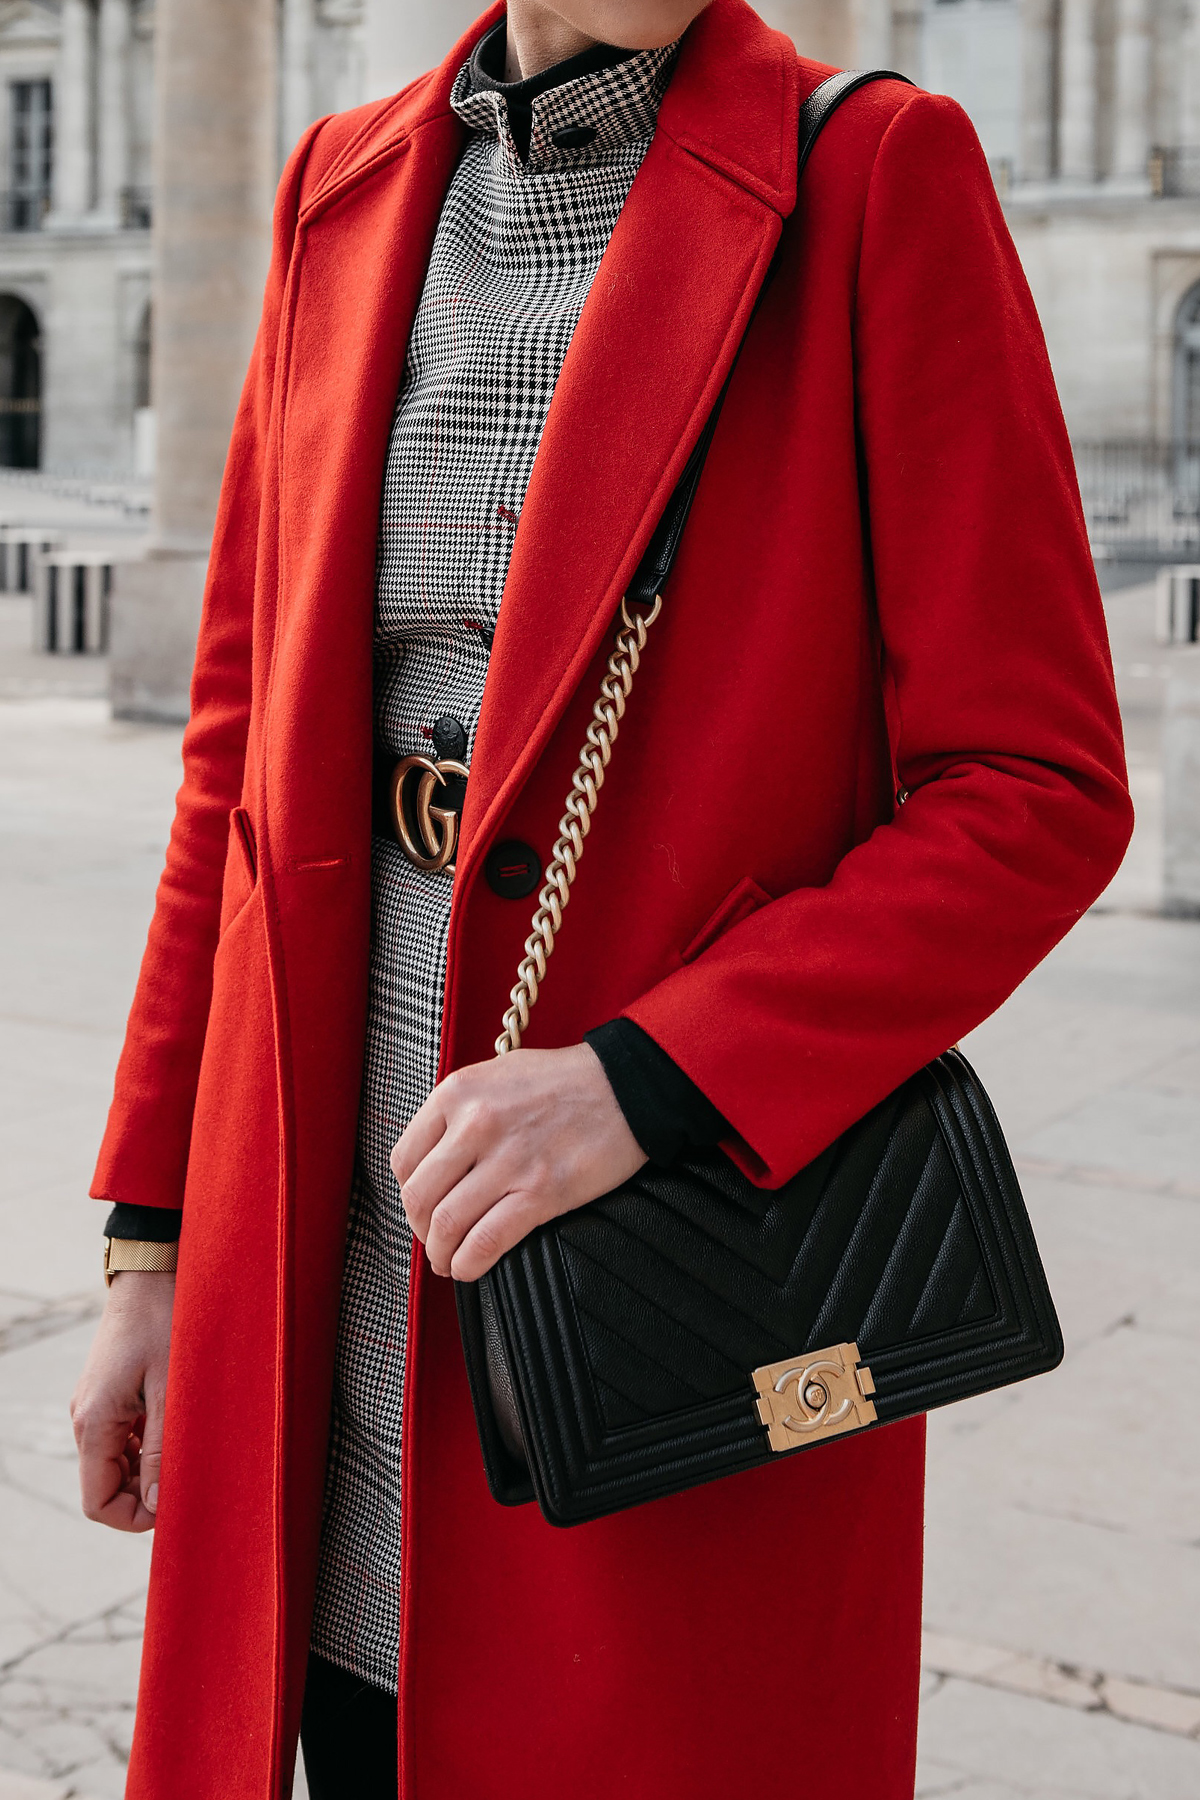 Red Wool Coat Plaid Dress Chanel Black Gold Boy Bag Paris Palais Royal Fashion Jackson Dallas Blogger Fashion Blogger Street Style